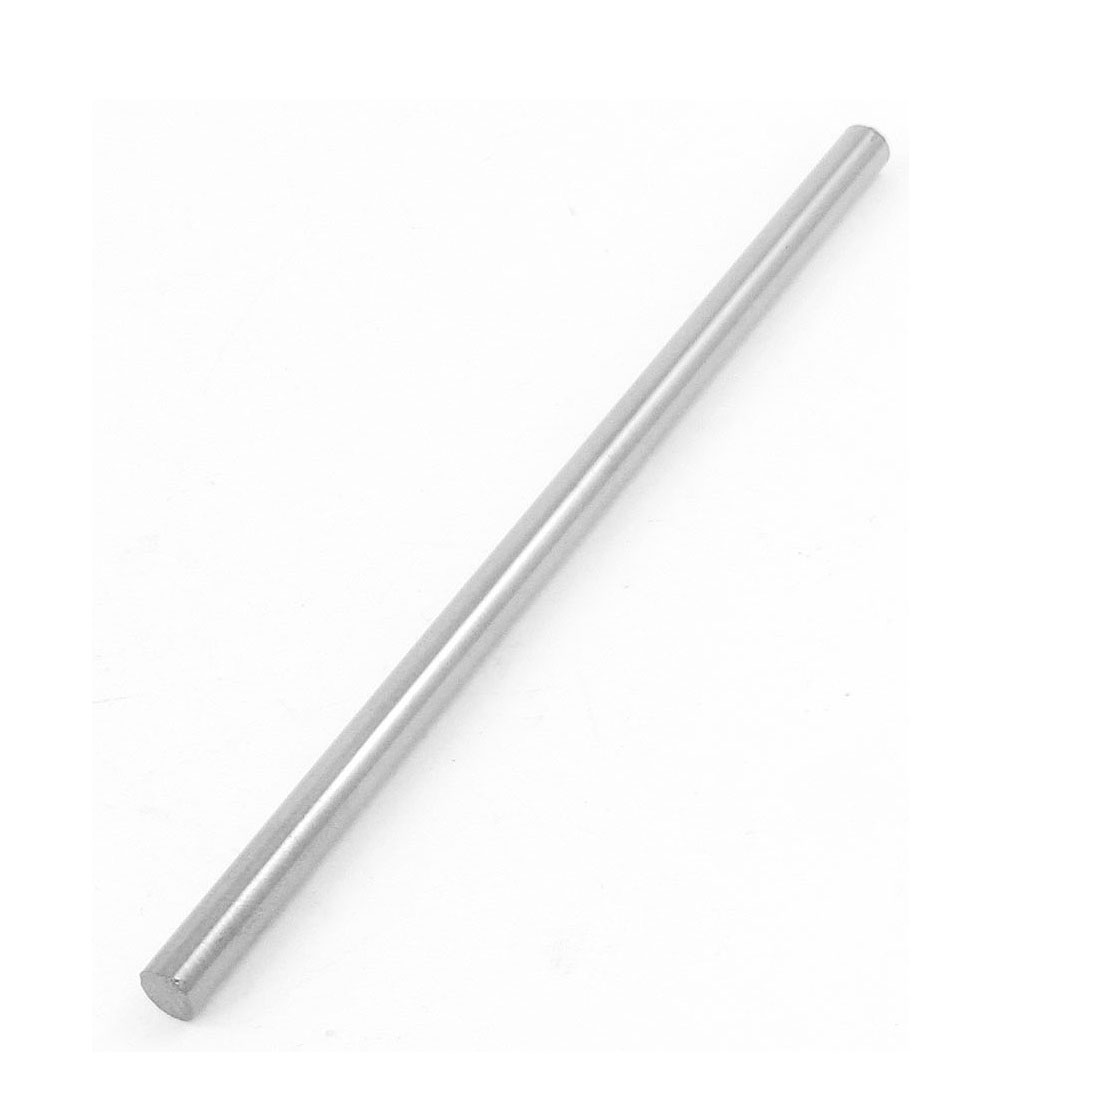 2.4mm x 100mm Tungsten Steel Turning Bars for CNC Lathe Silver Tone